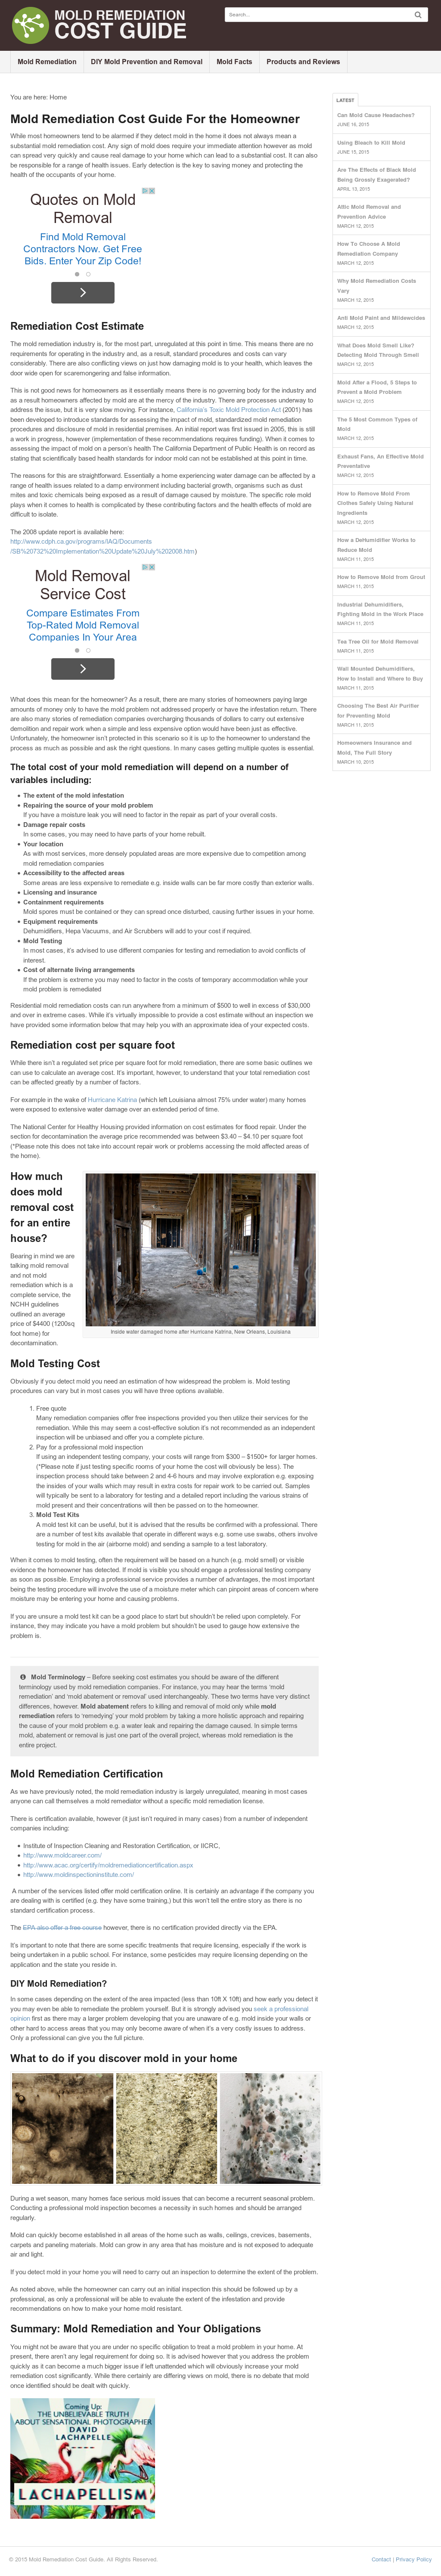 Mold Remediation Cost Guide Competitors, Revenue and Employees